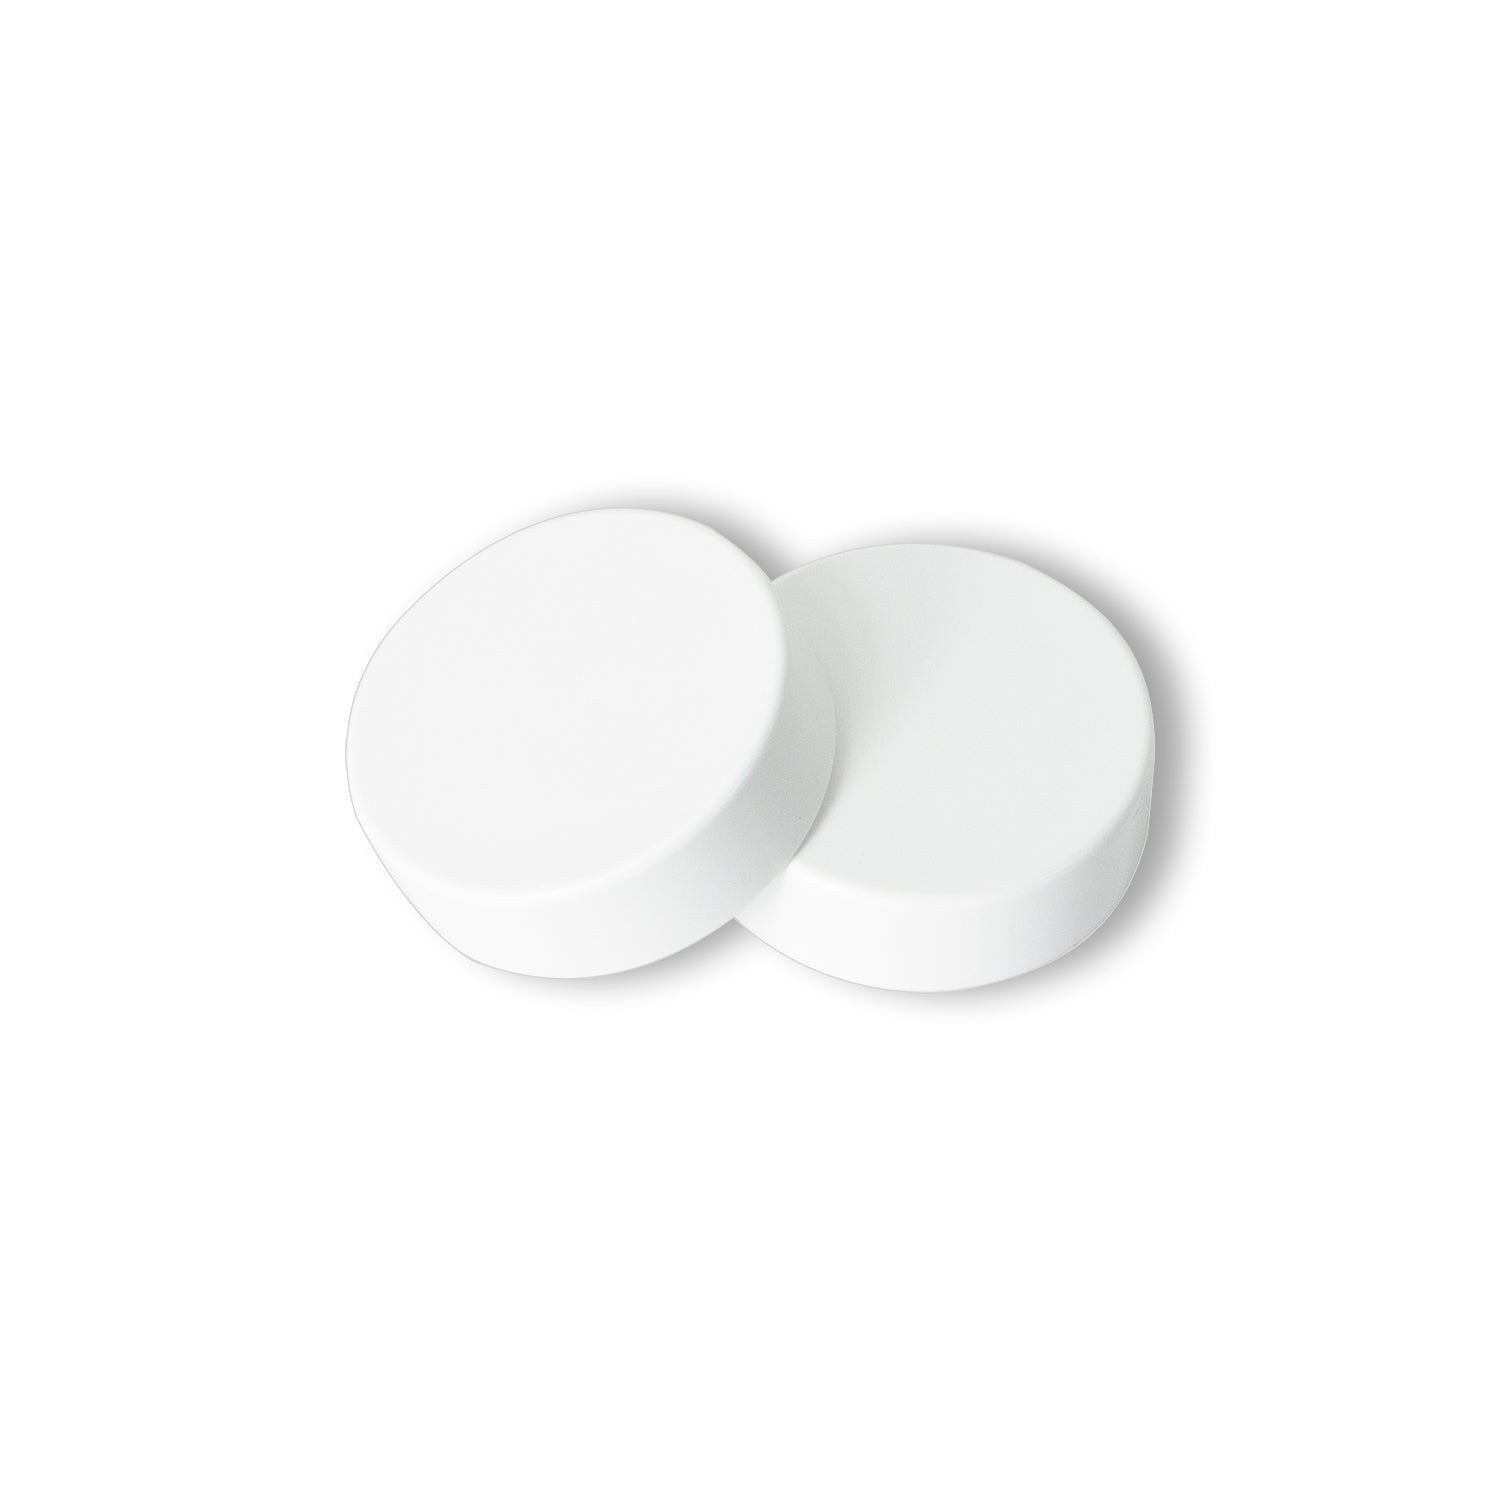 Pair of White Cover Caps for Heated Towel Rail